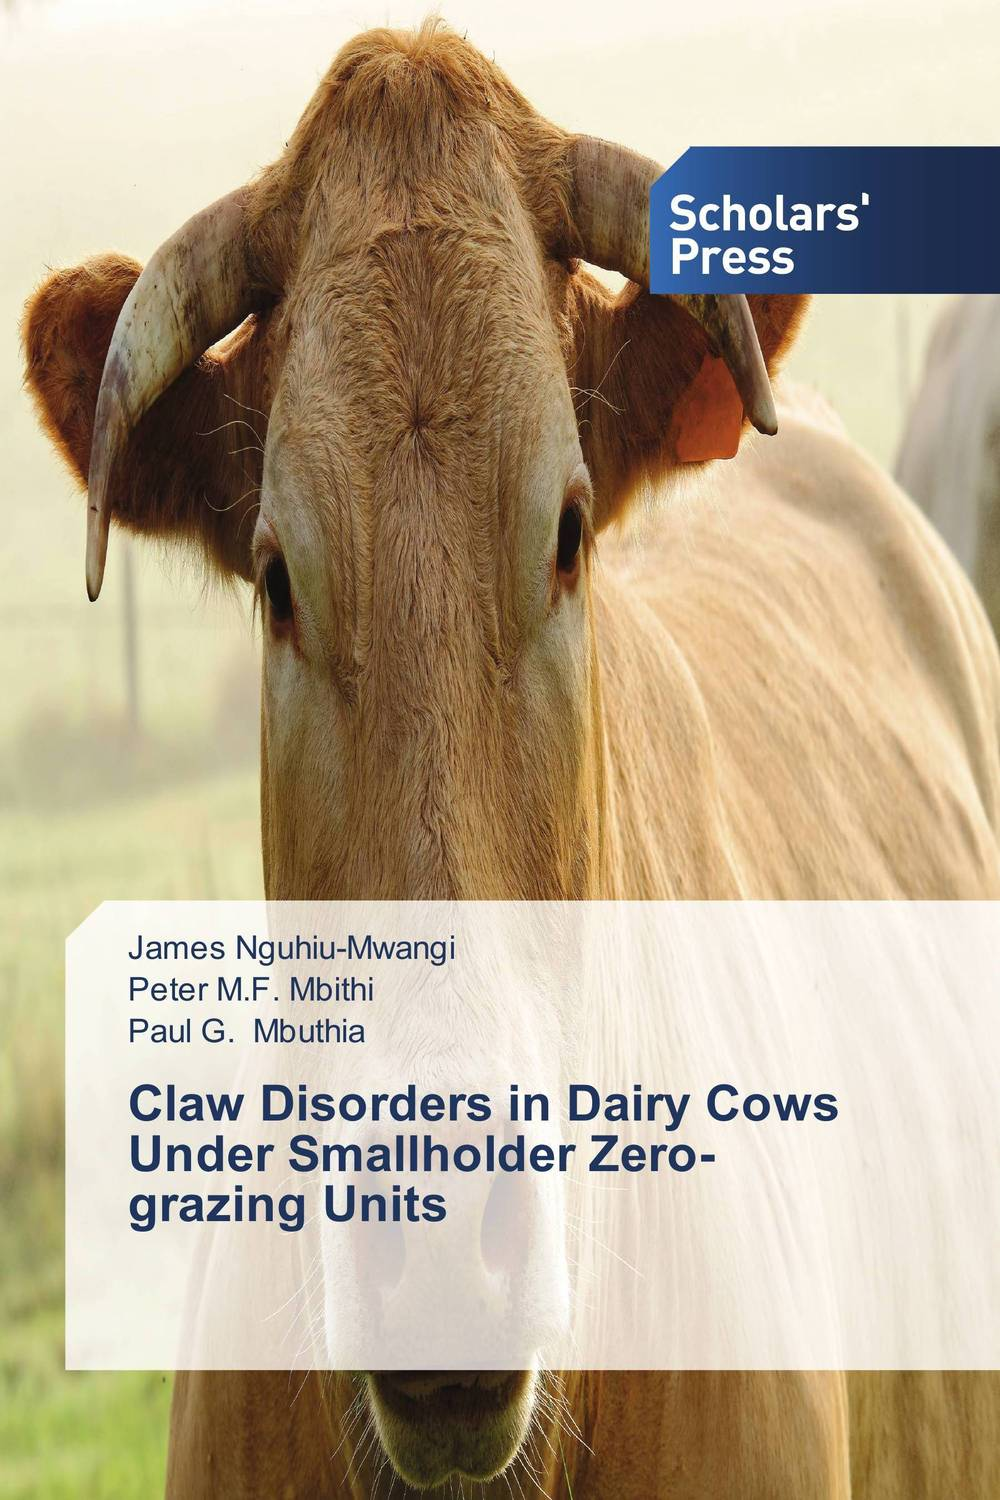 Claw Disorders in Dairy Cows Under Smallholder Zero-grazing Units claw disorders in dairy cows under smallholder zero grazing units